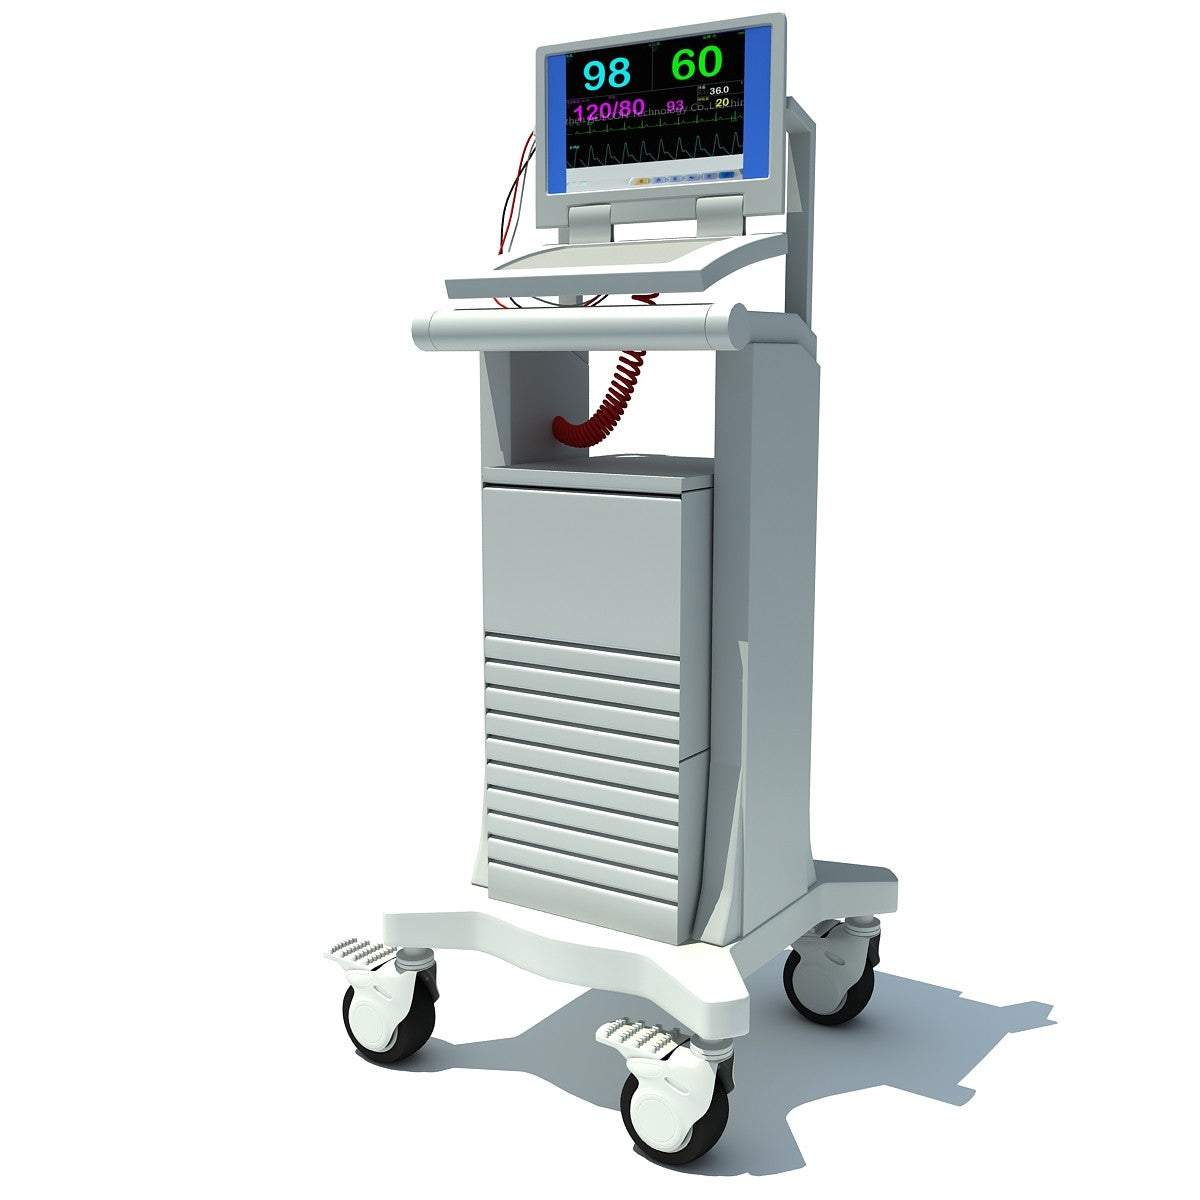 3D Medical Equipment Model